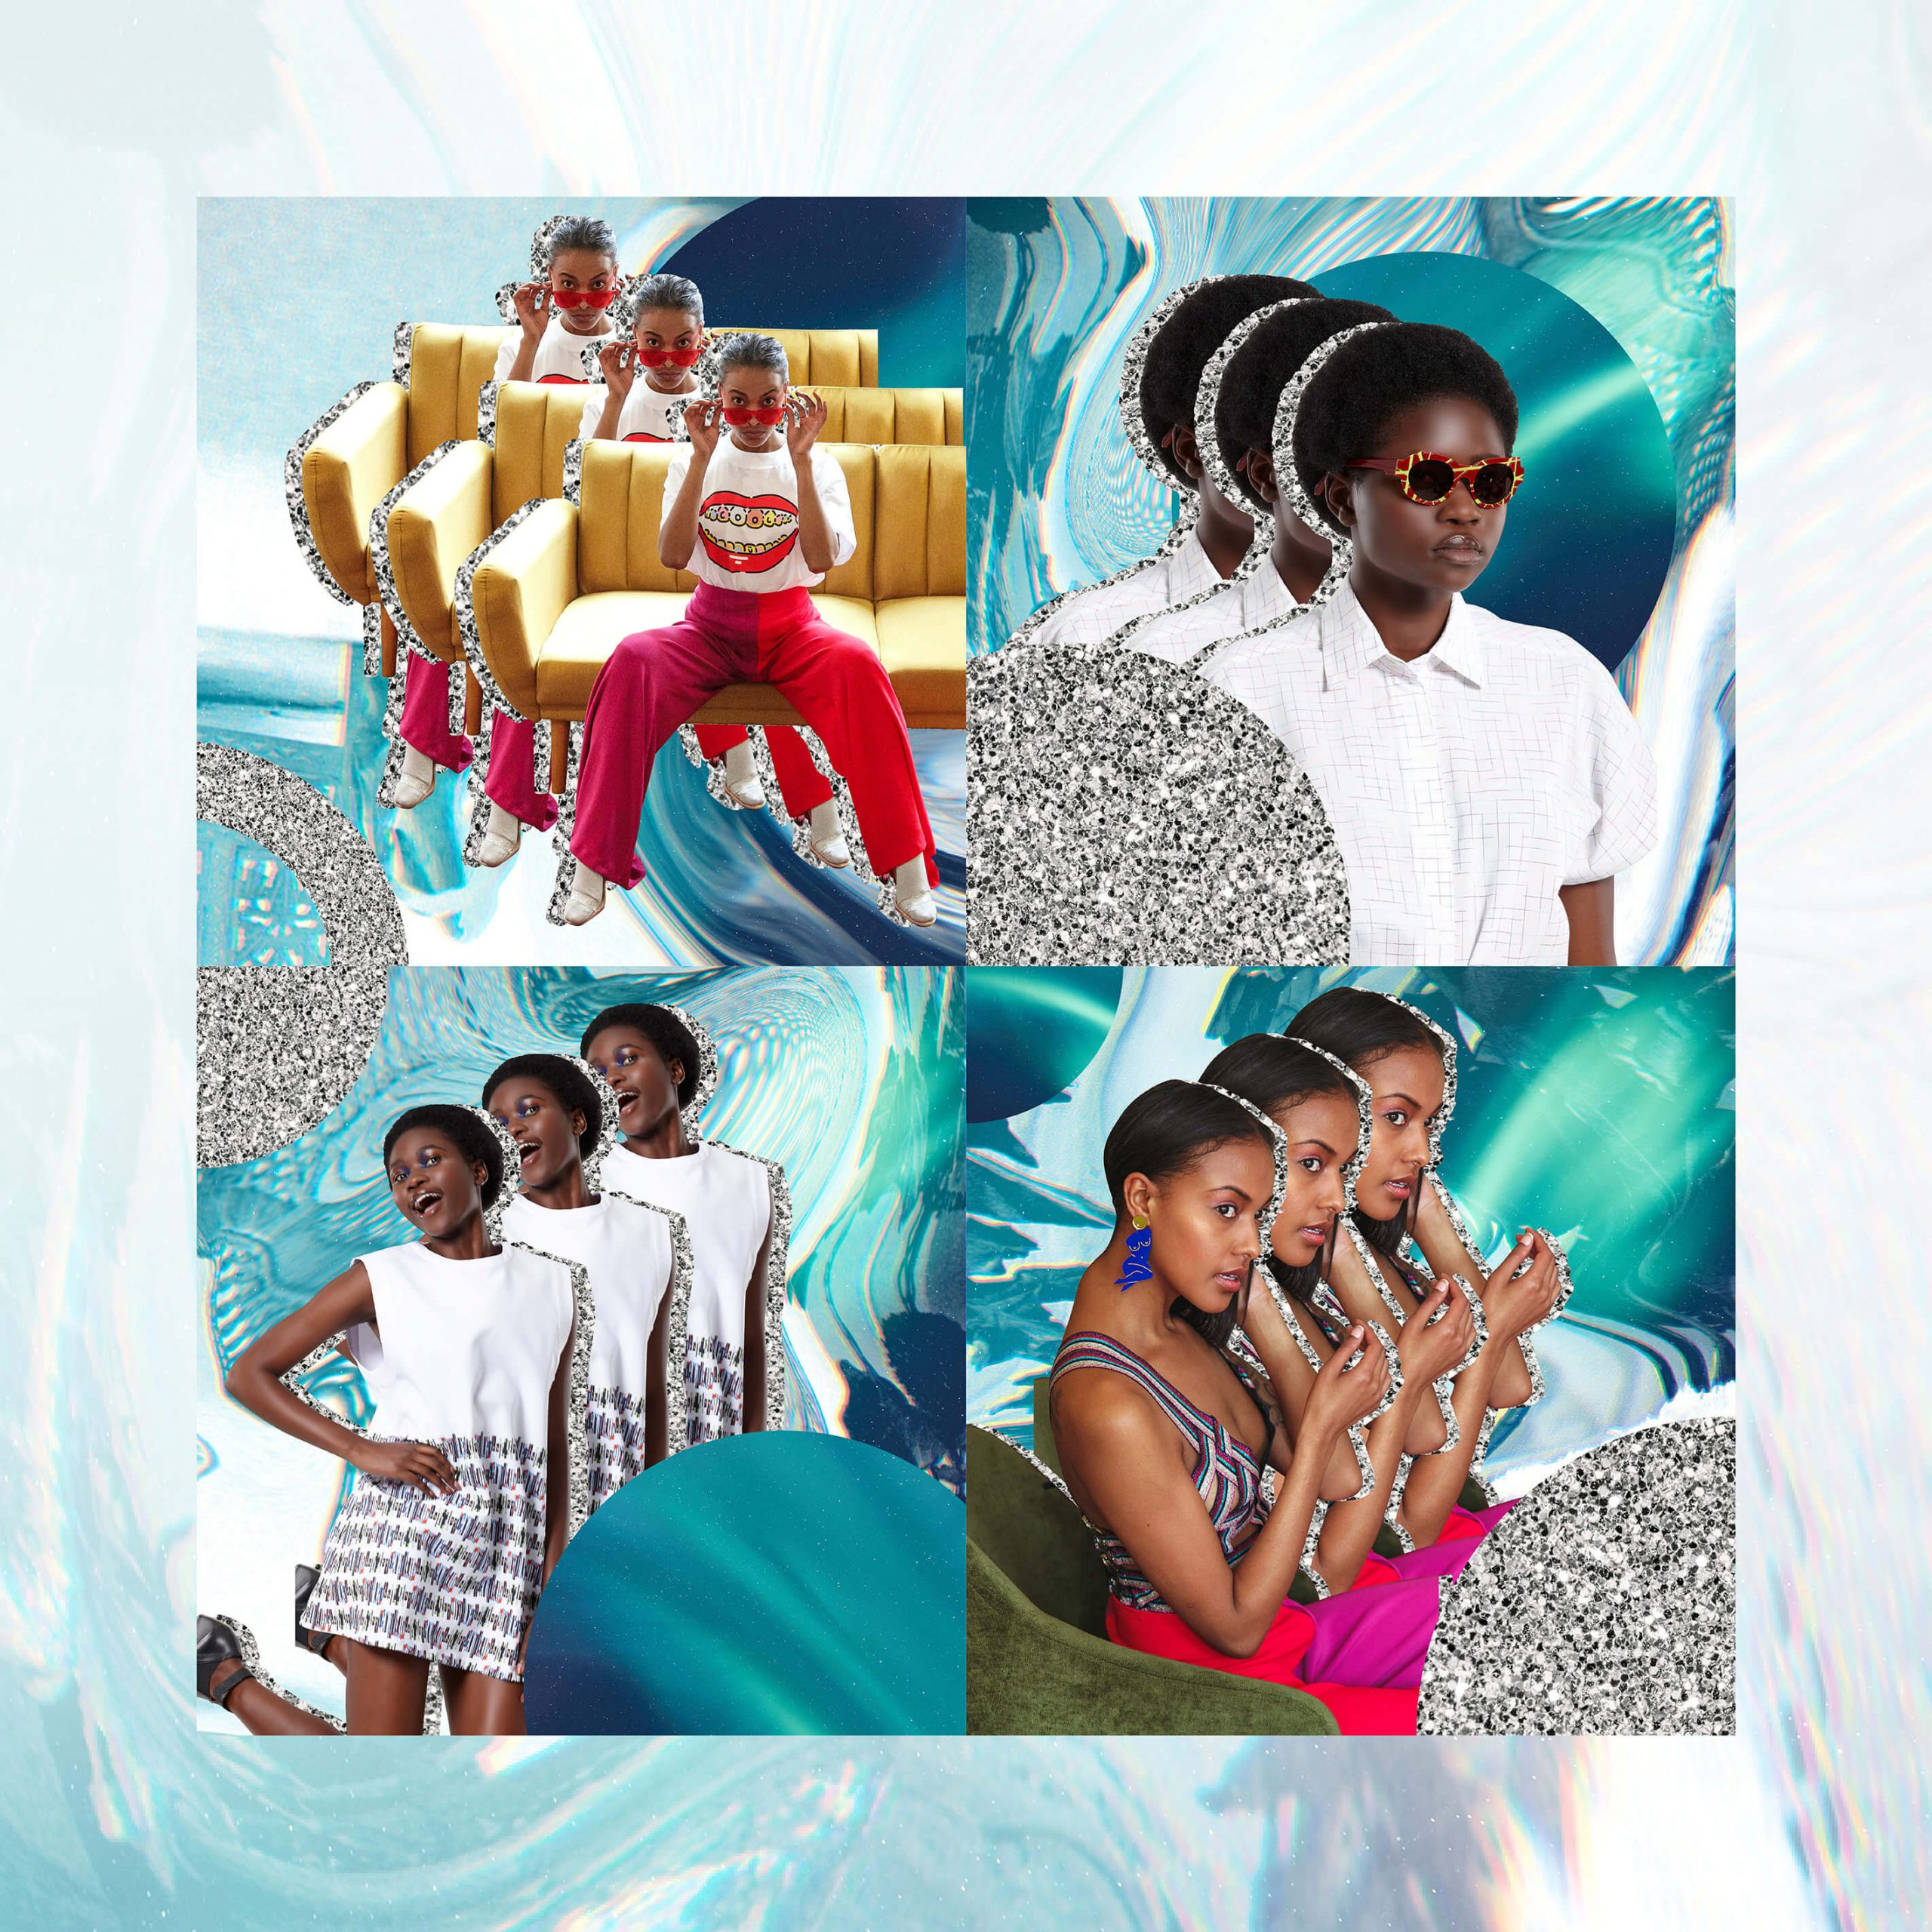 grid of social media collage imagery created for uncommon store for festival season